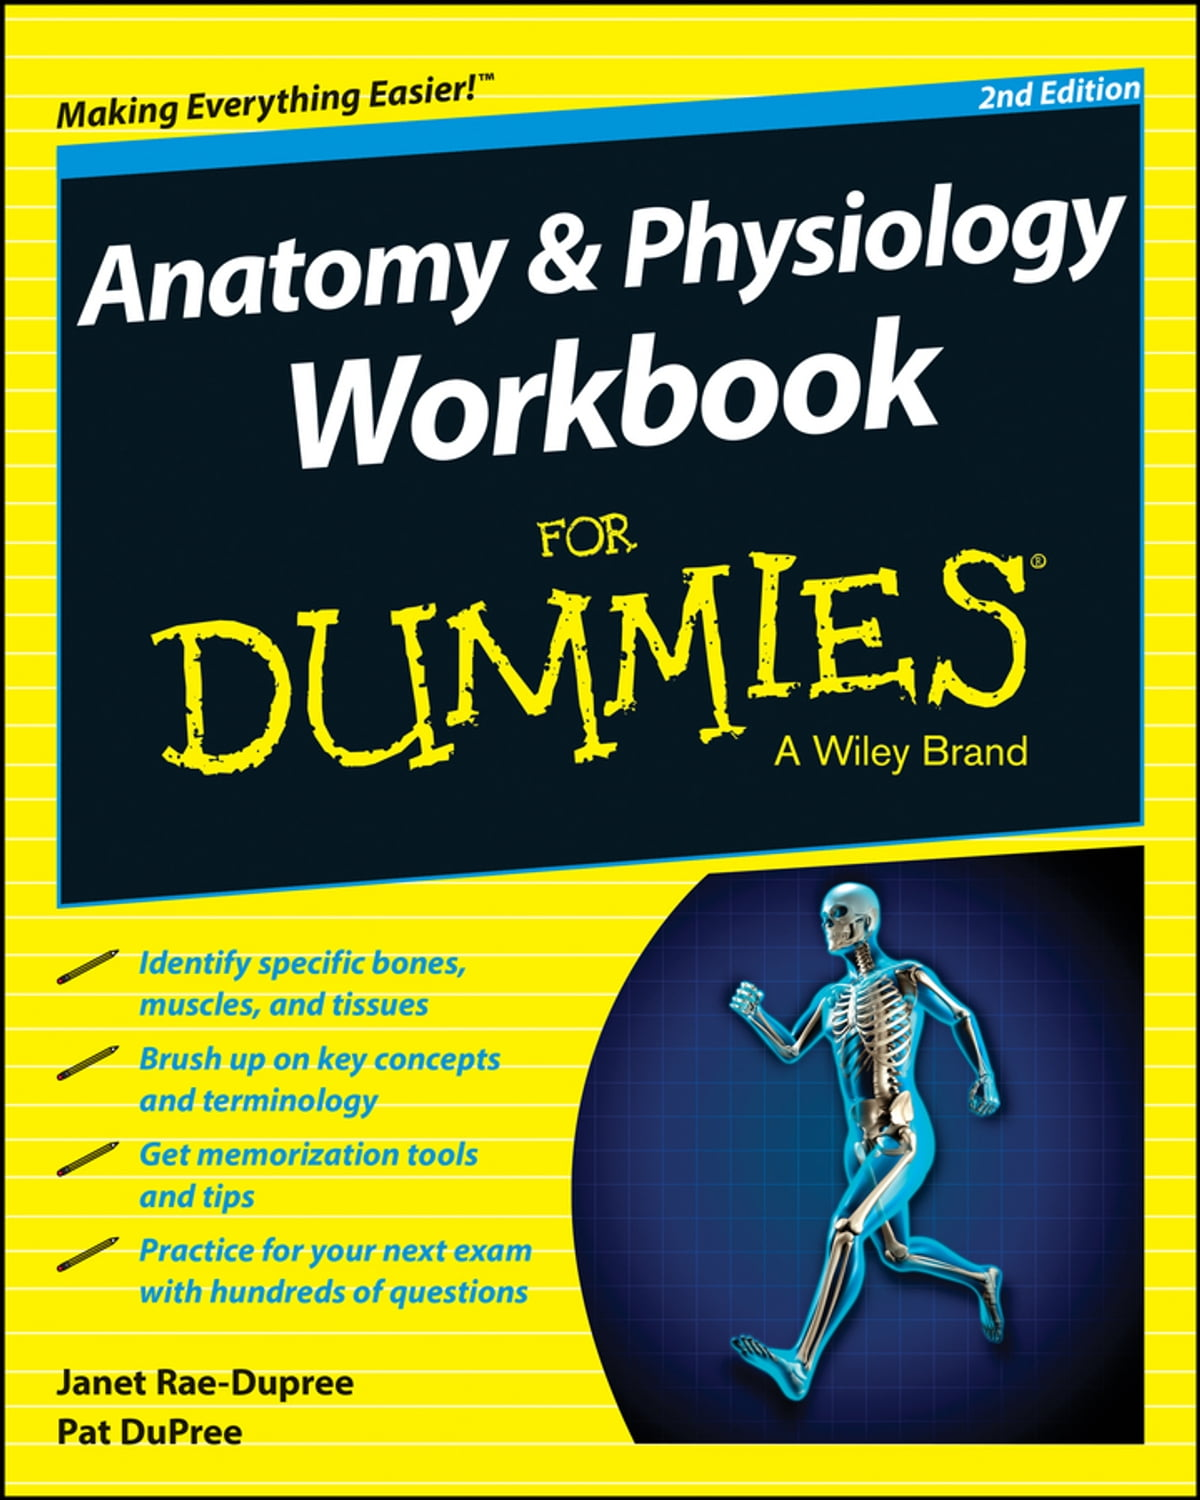 Anatomy and Physiology Workbook For Dummies eBook by Janet Rae ...